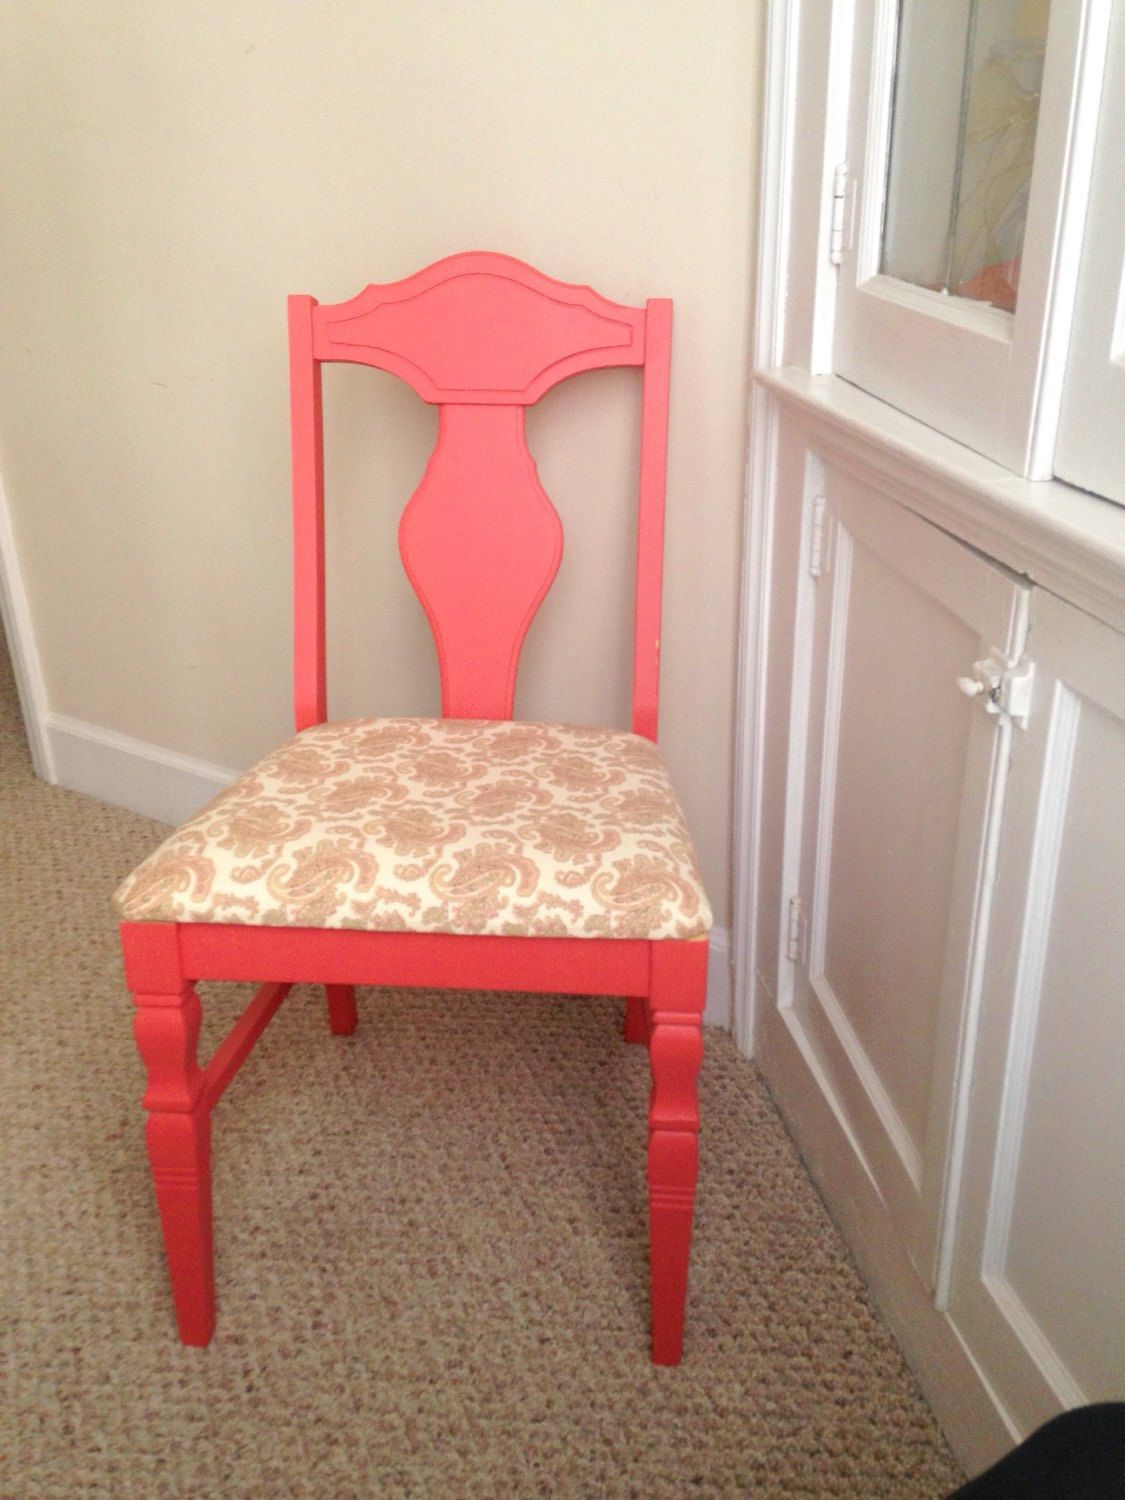 Delicieux Coral Upholstered Chair, Desk Chair, Accent Chair By 2BirdsVintage On Etsy  Https:/